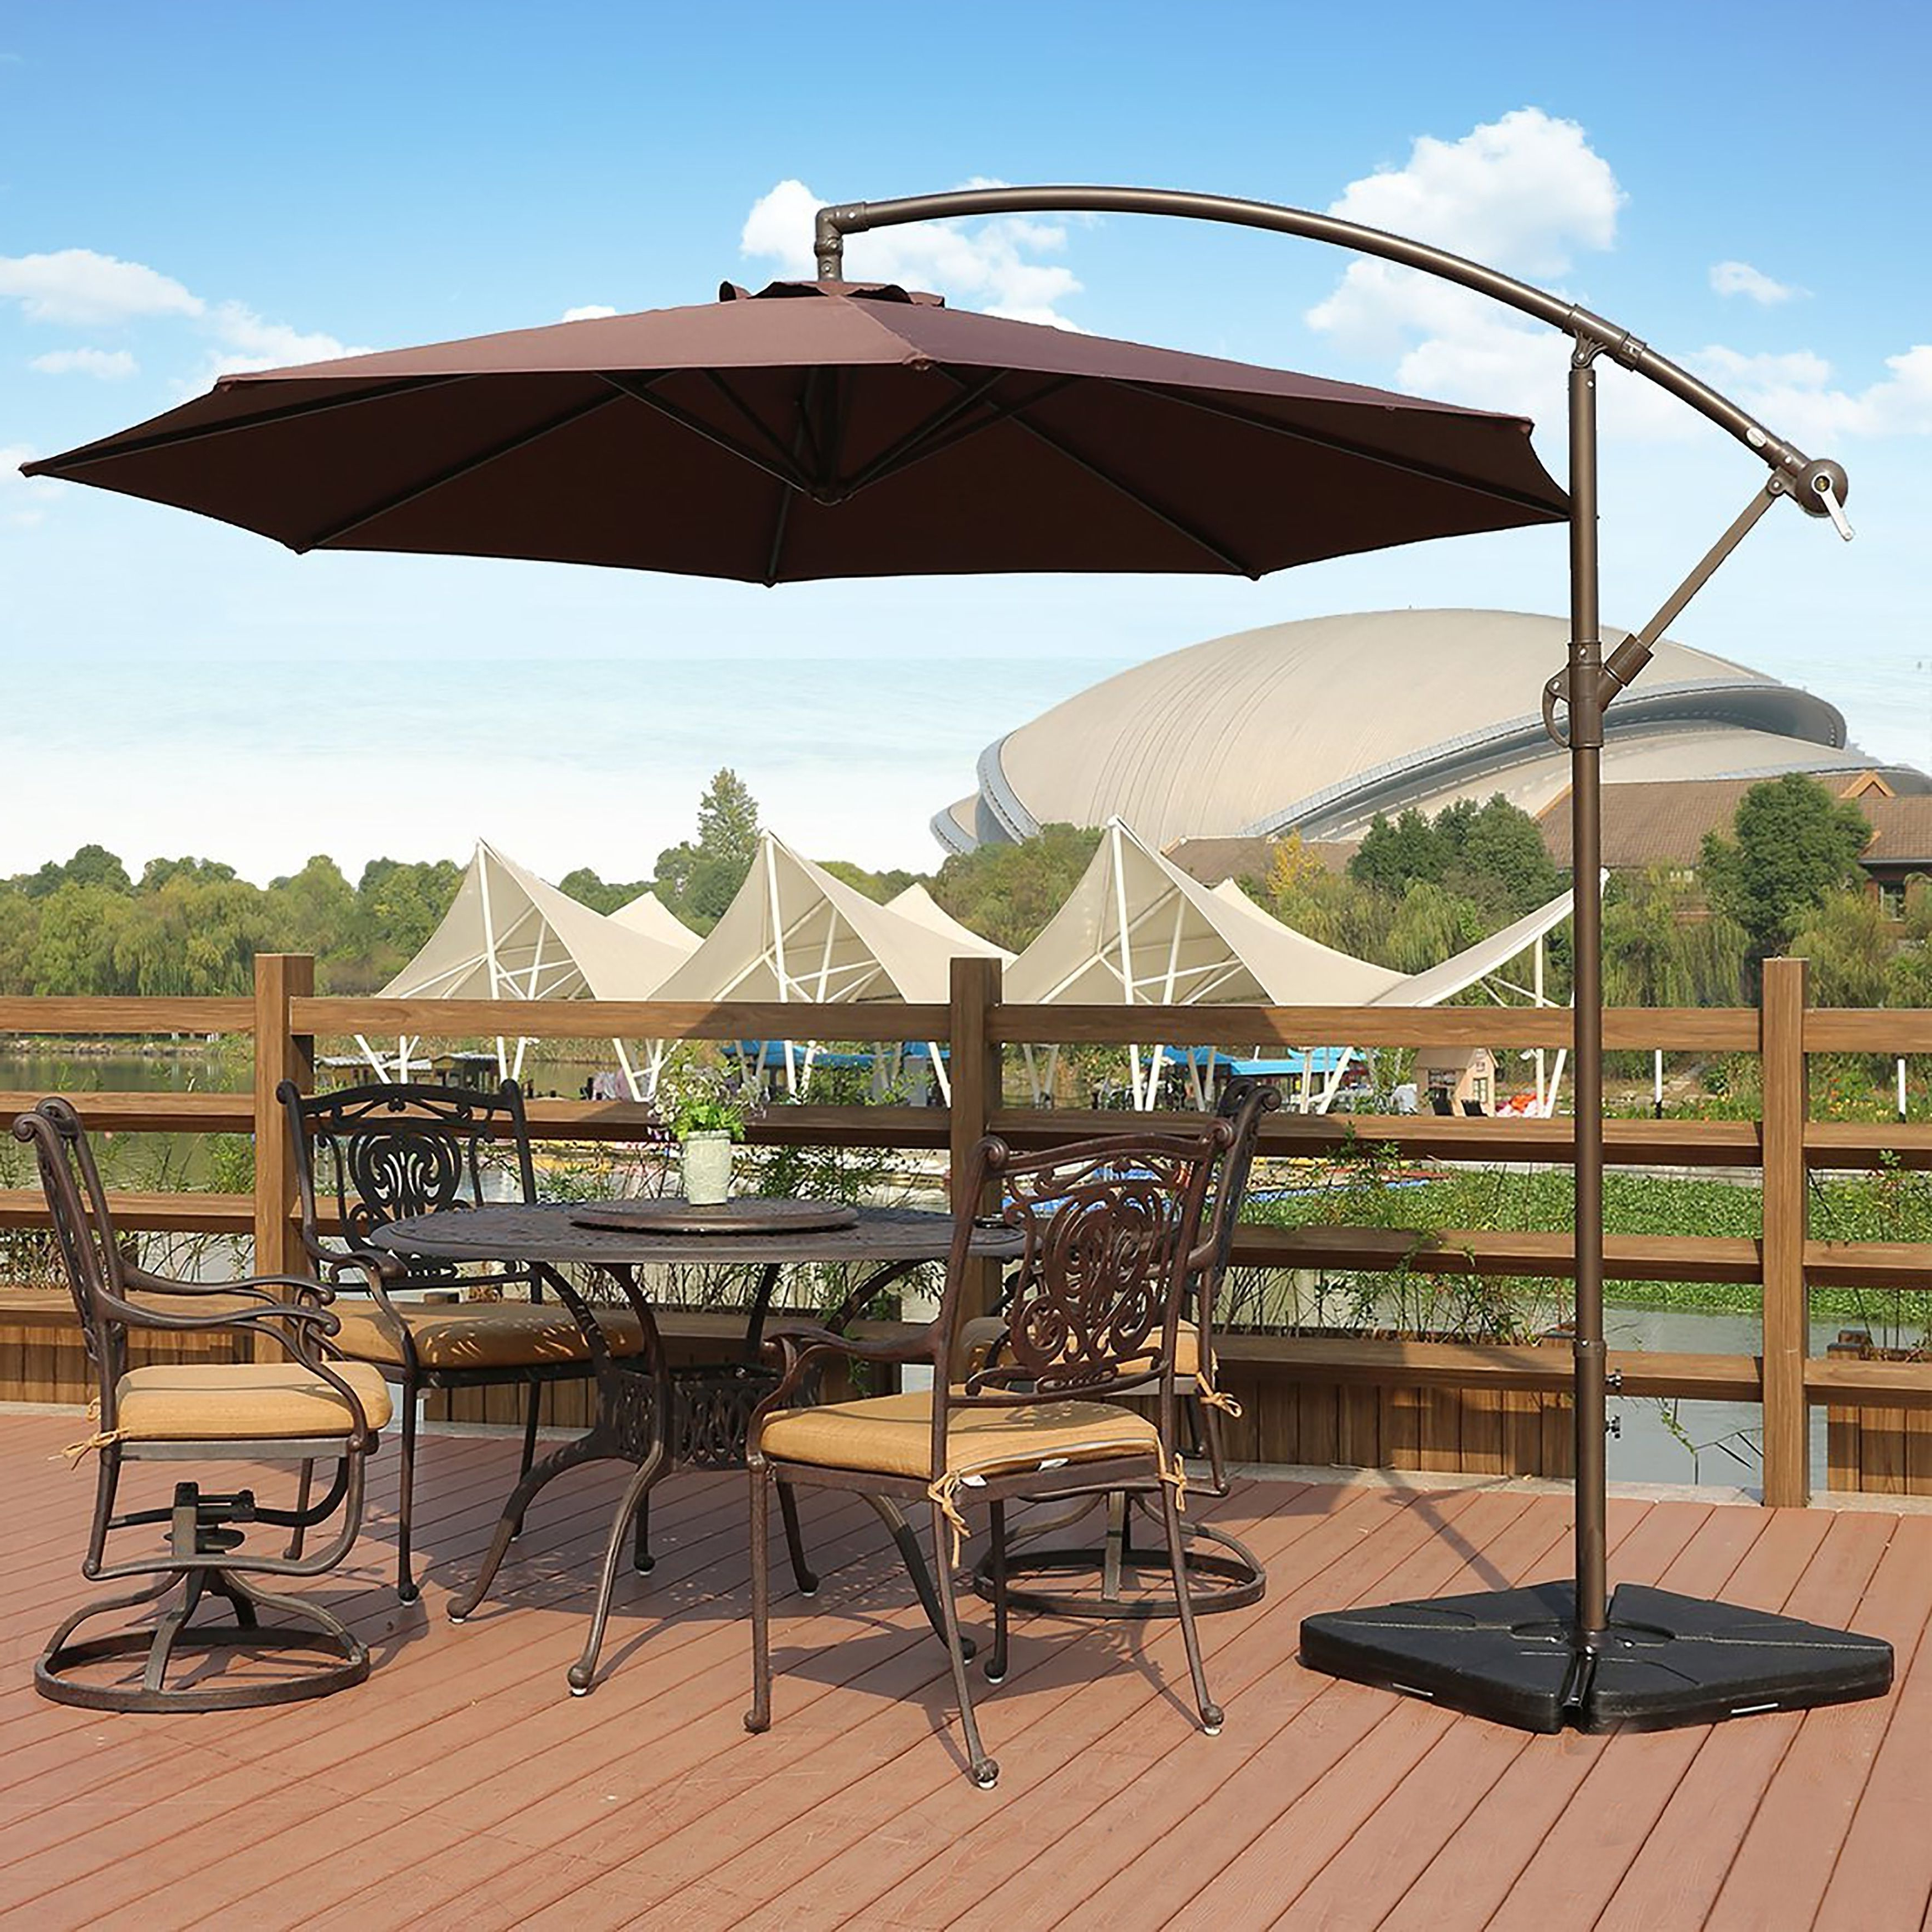 Karr Cantilever Umbrellas Pertaining To 2020 Weller 10 Ft Offset Cantilever Hanging Patio Umbrellawestin (Gallery 6 of 20)